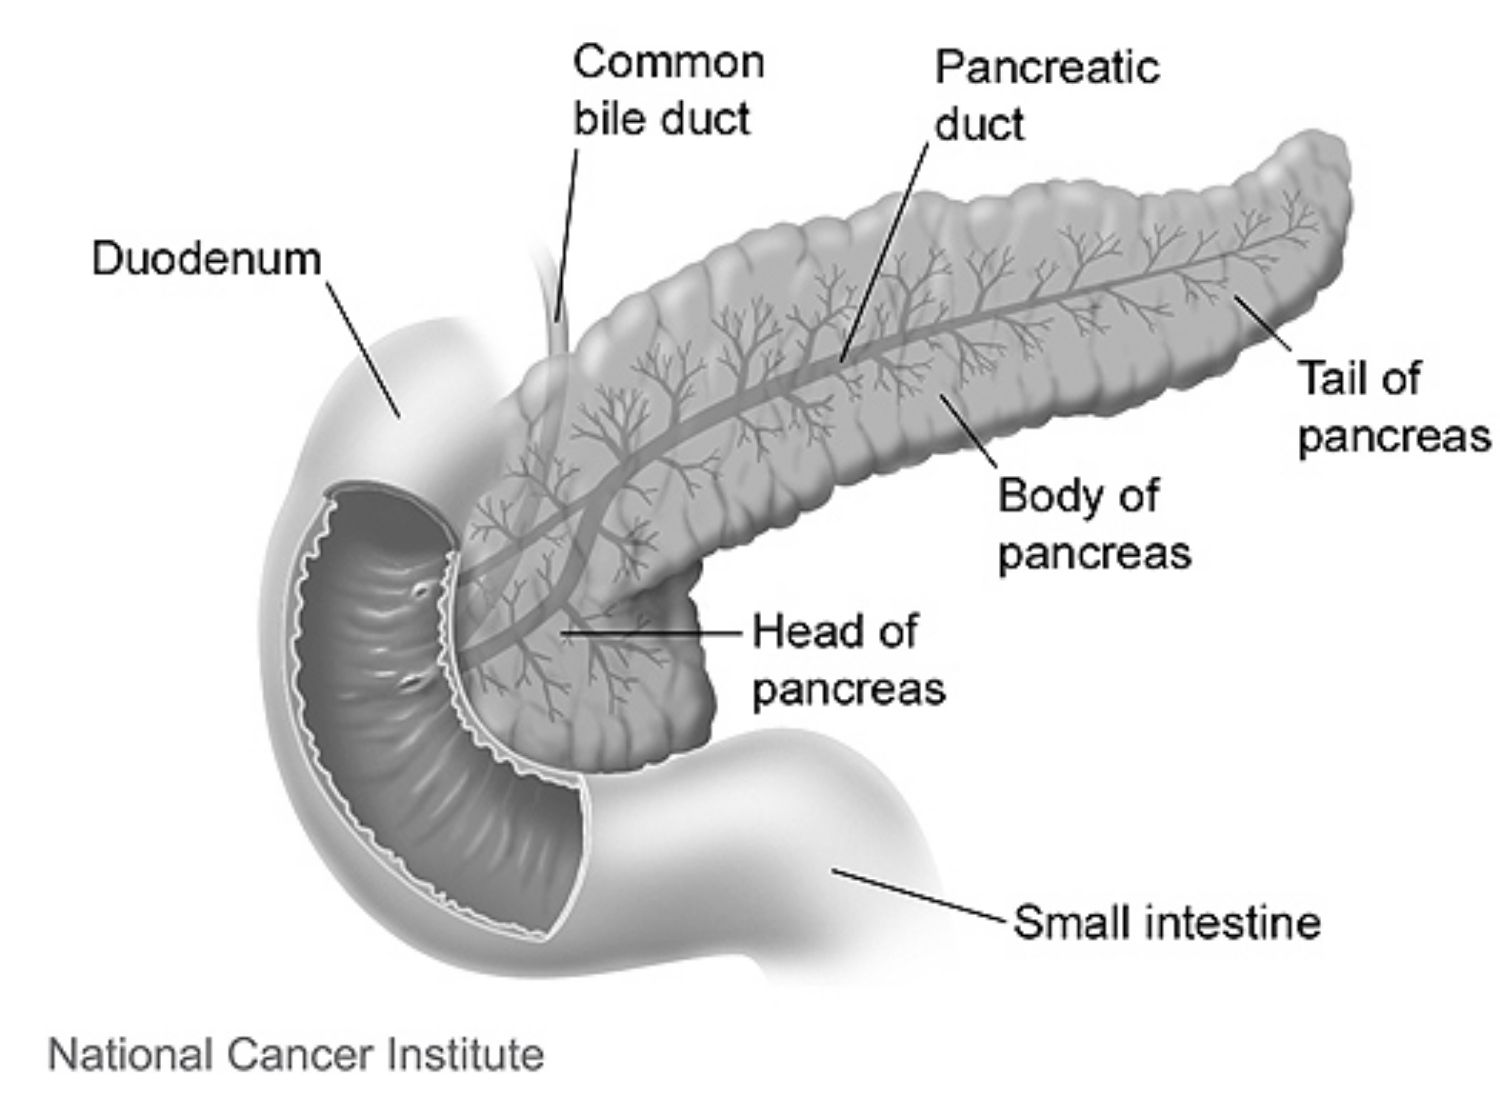 Pancreas Anatomy and Function